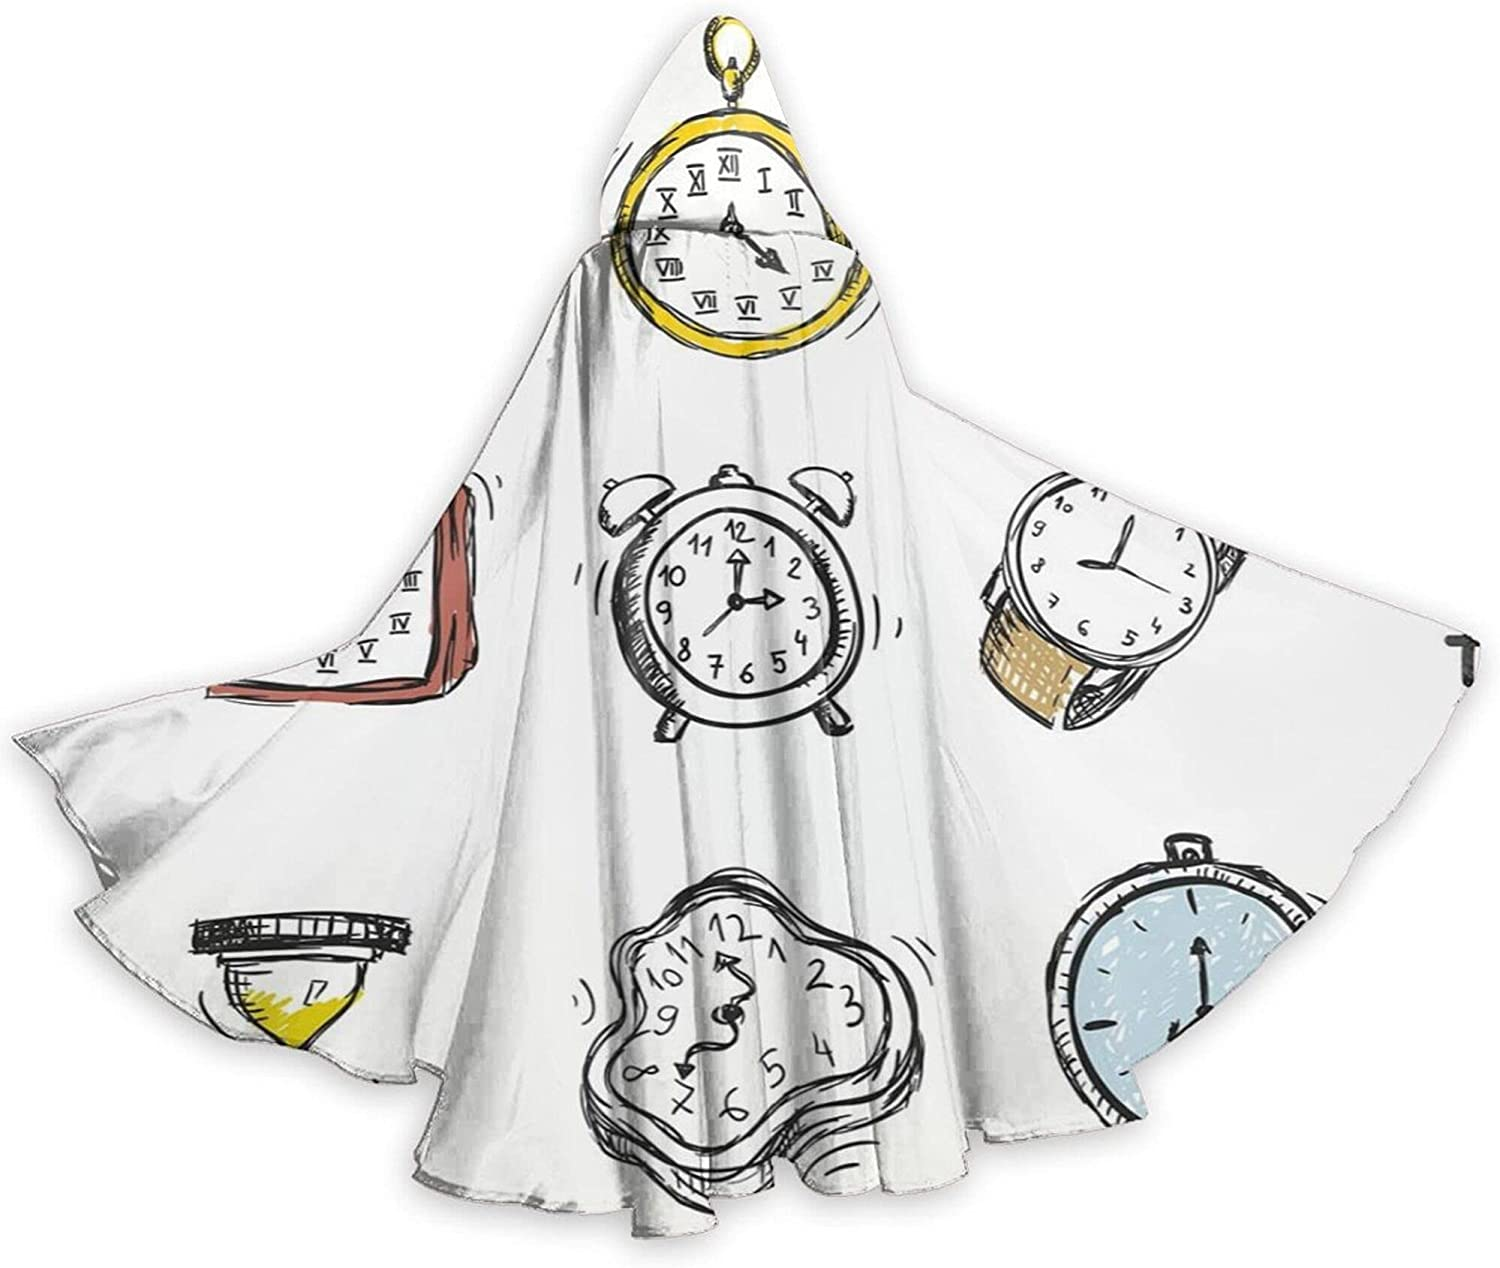 Cloak National uniform free Ranking TOP3 shipping An Assortment Of Vintage Watches And Clocks D Hand Doodled